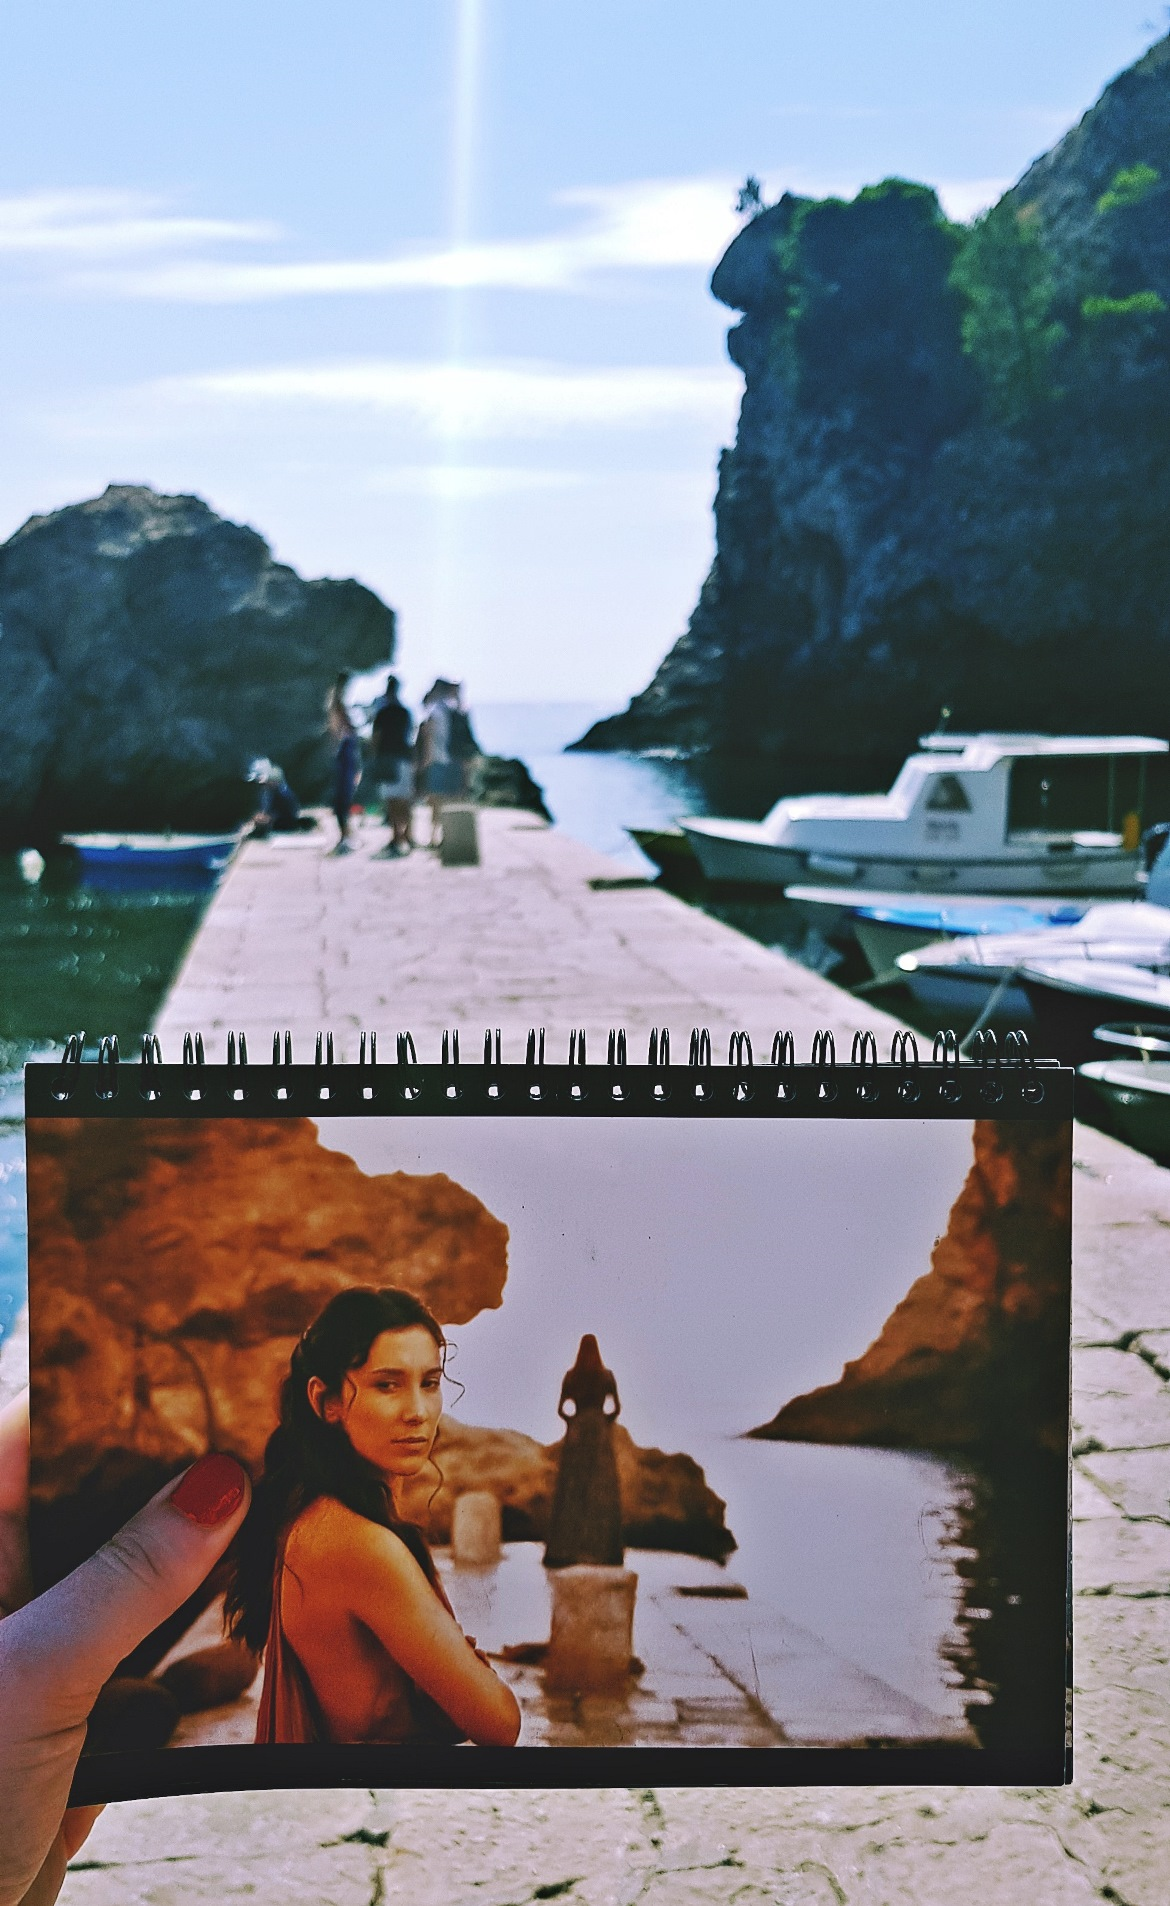 Dubrovnik pier on the Game of Thrones tour - Croatia in Photographs by BeckyBecky Blogs